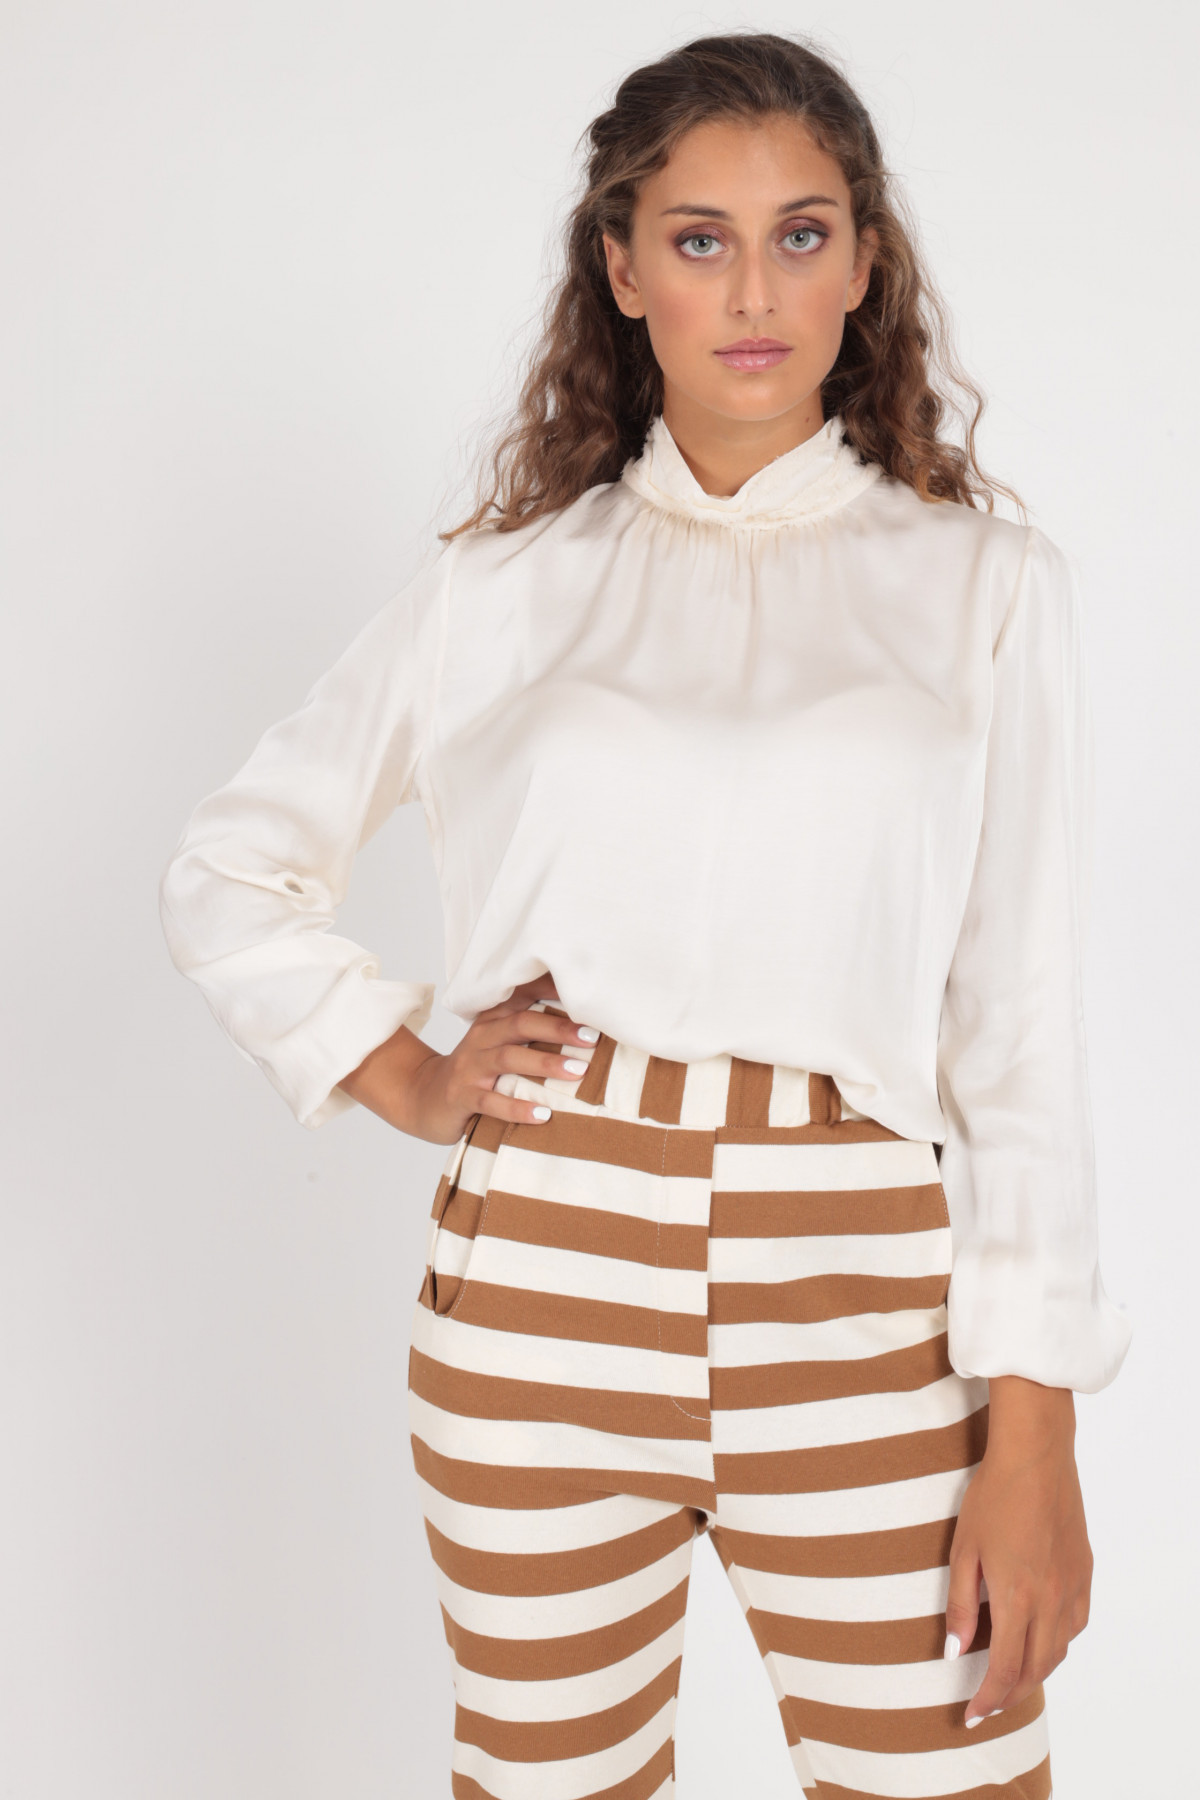 Balloon Sleeve Blouse Volcano Collar and Fringes